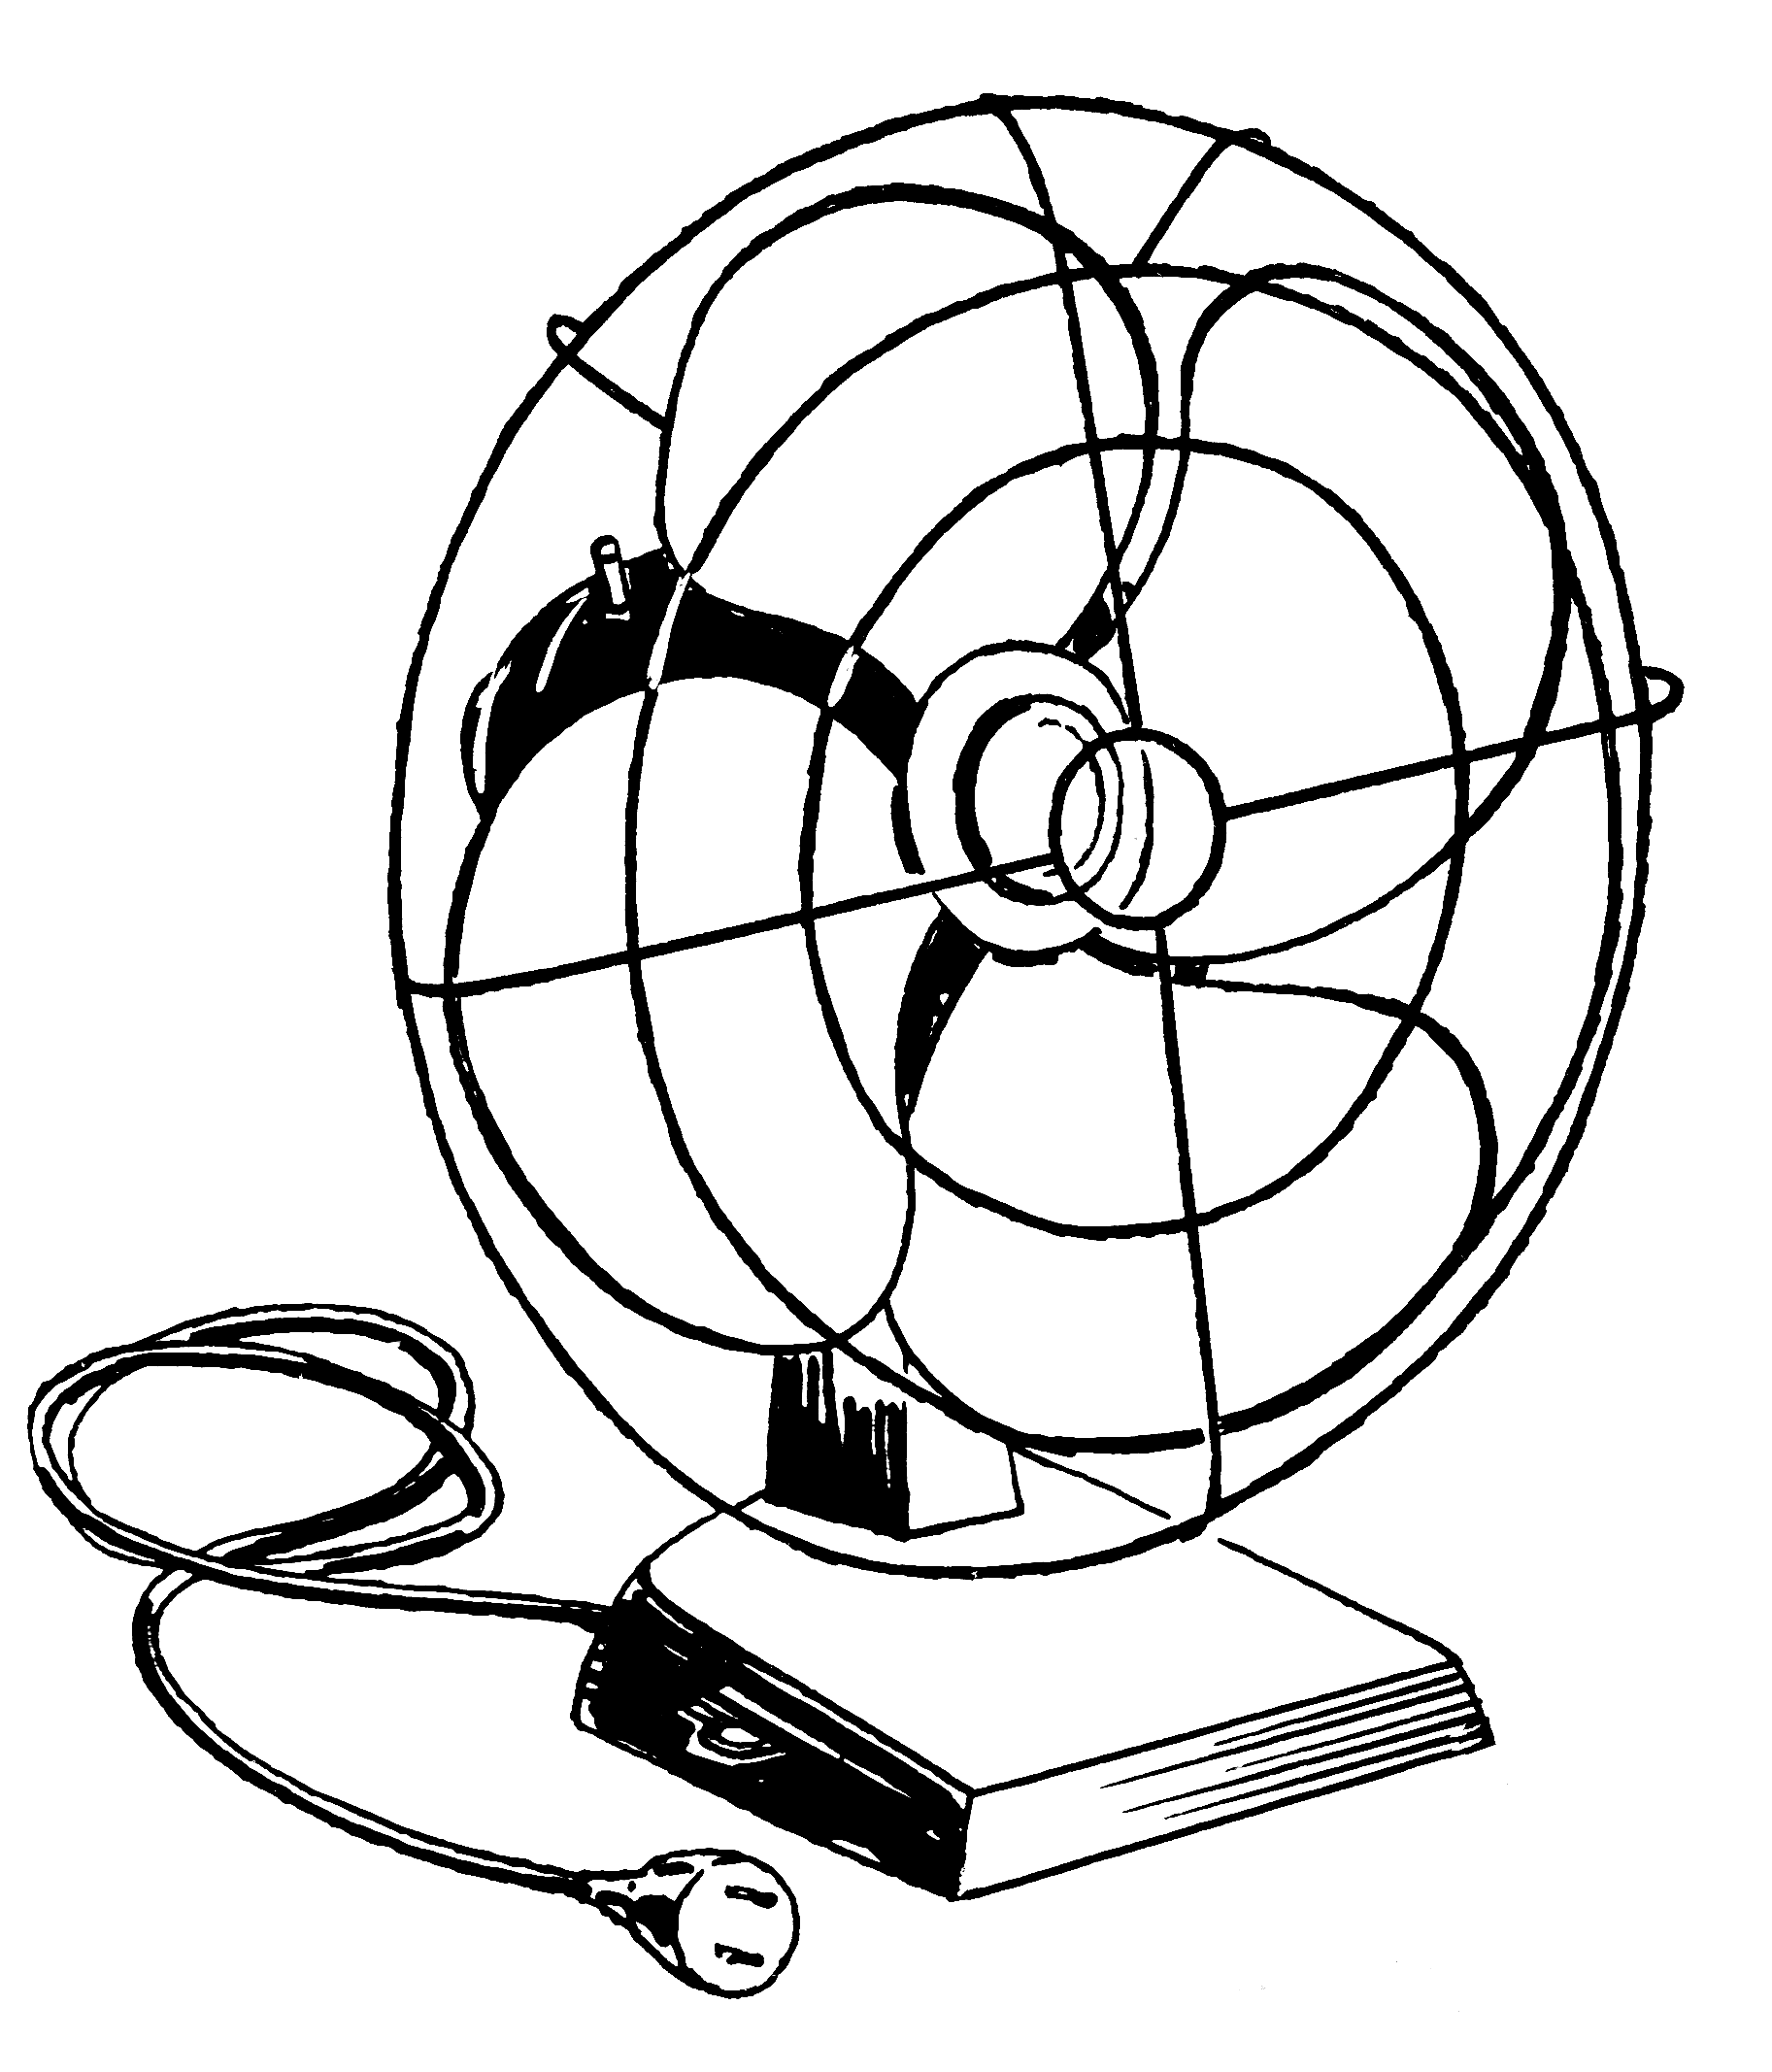 A Sketch Of A Electric Fan : Electric fan drawing sketch coloring page